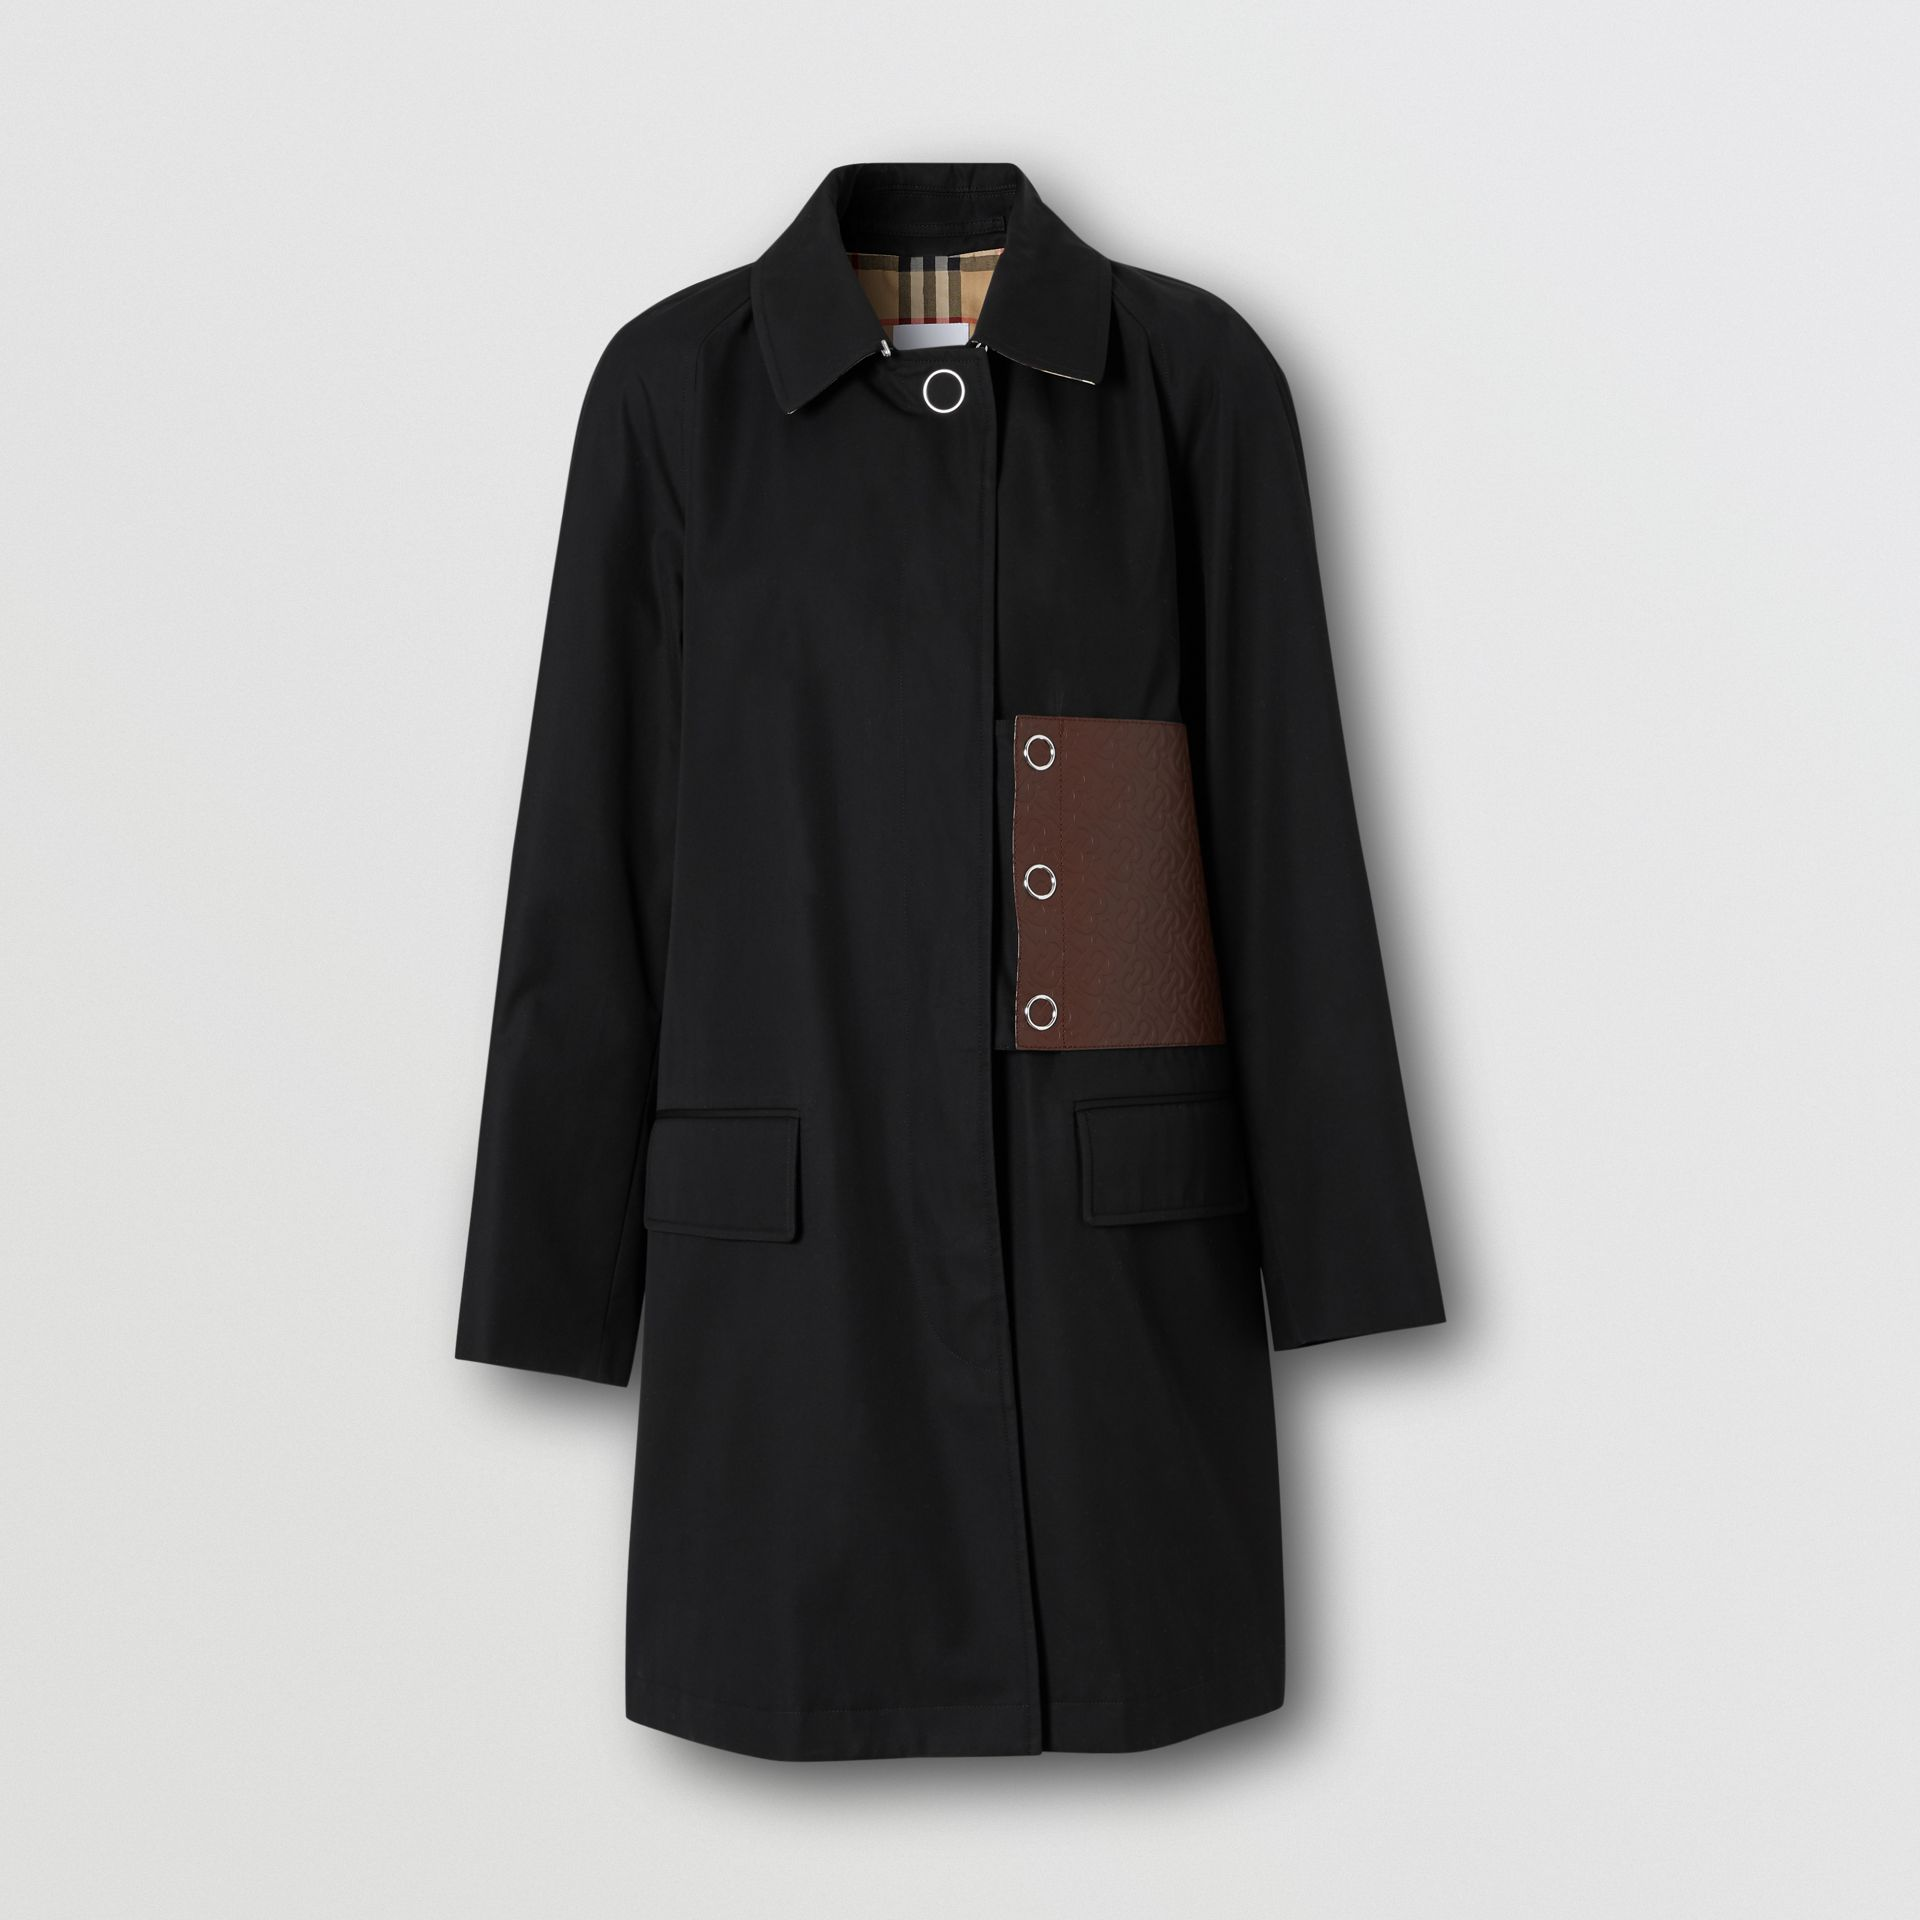 Monogram Leather Detail Cotton Gabardine Car Coat in Black - Women | Burberry - gallery image 3